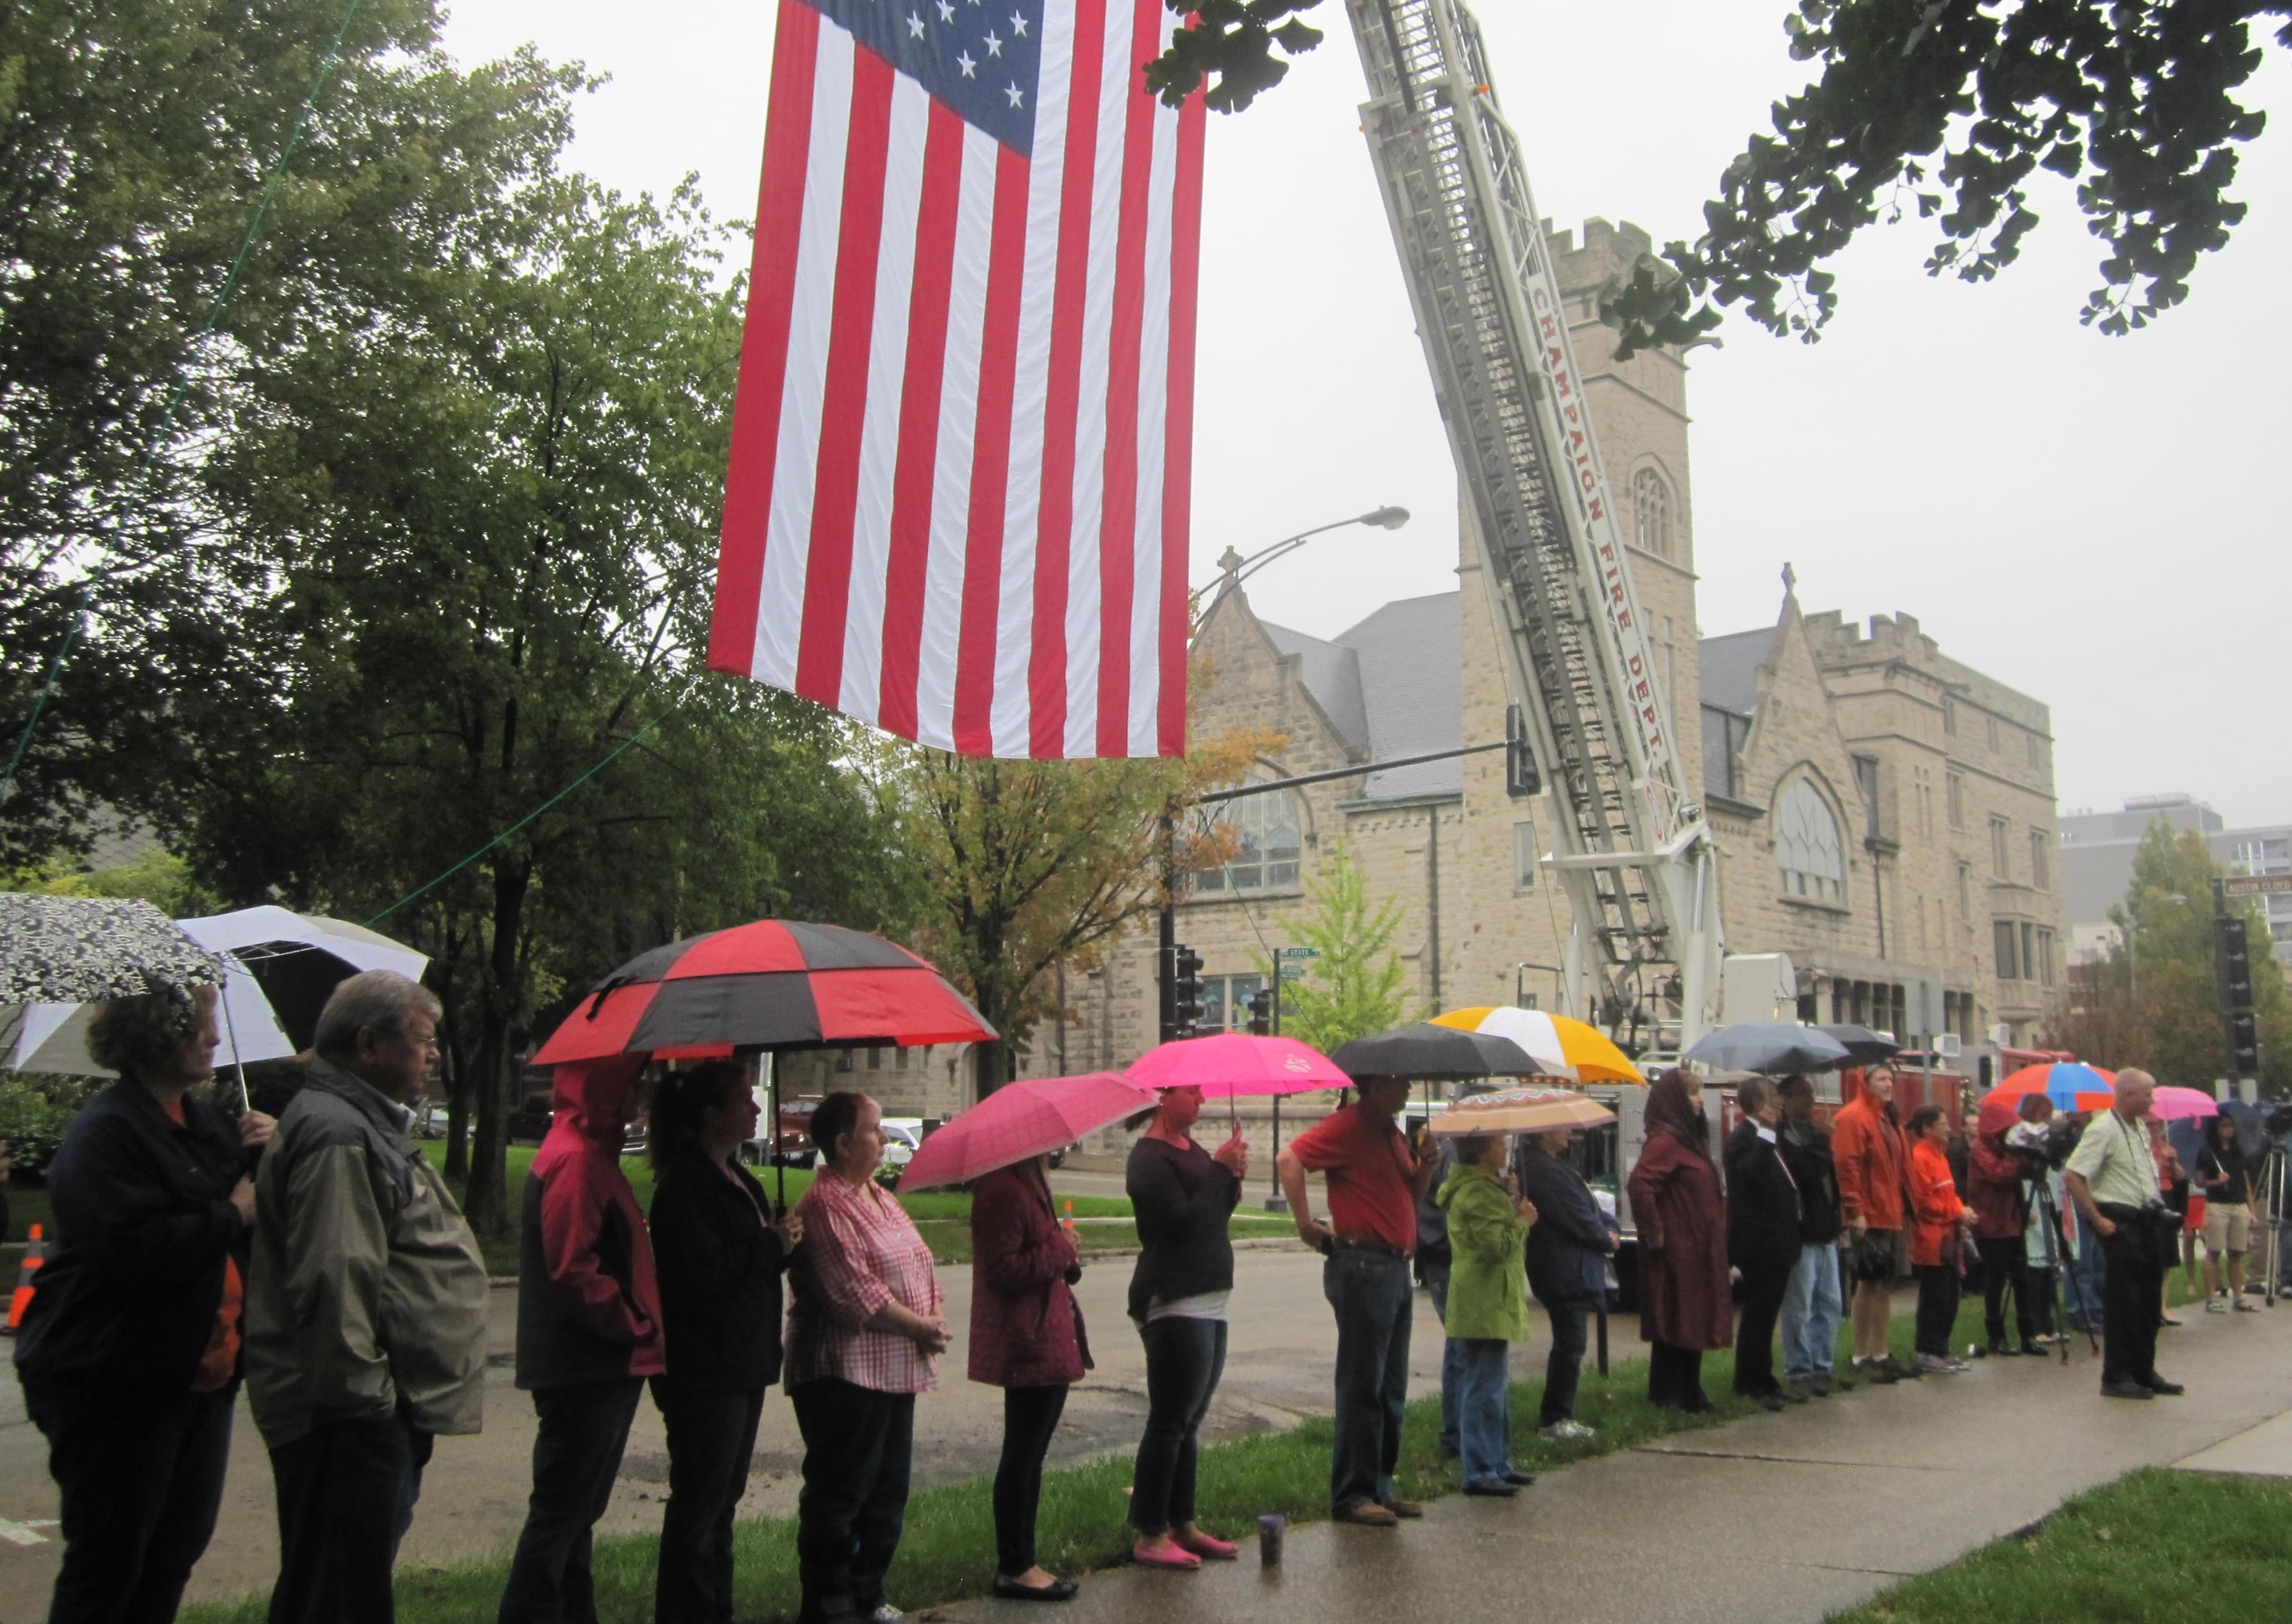 Onlookers with umbrellas gather for Champaign's 9-11 memorial ceremony at Westside Park, under a US flag hoisted by a crane.